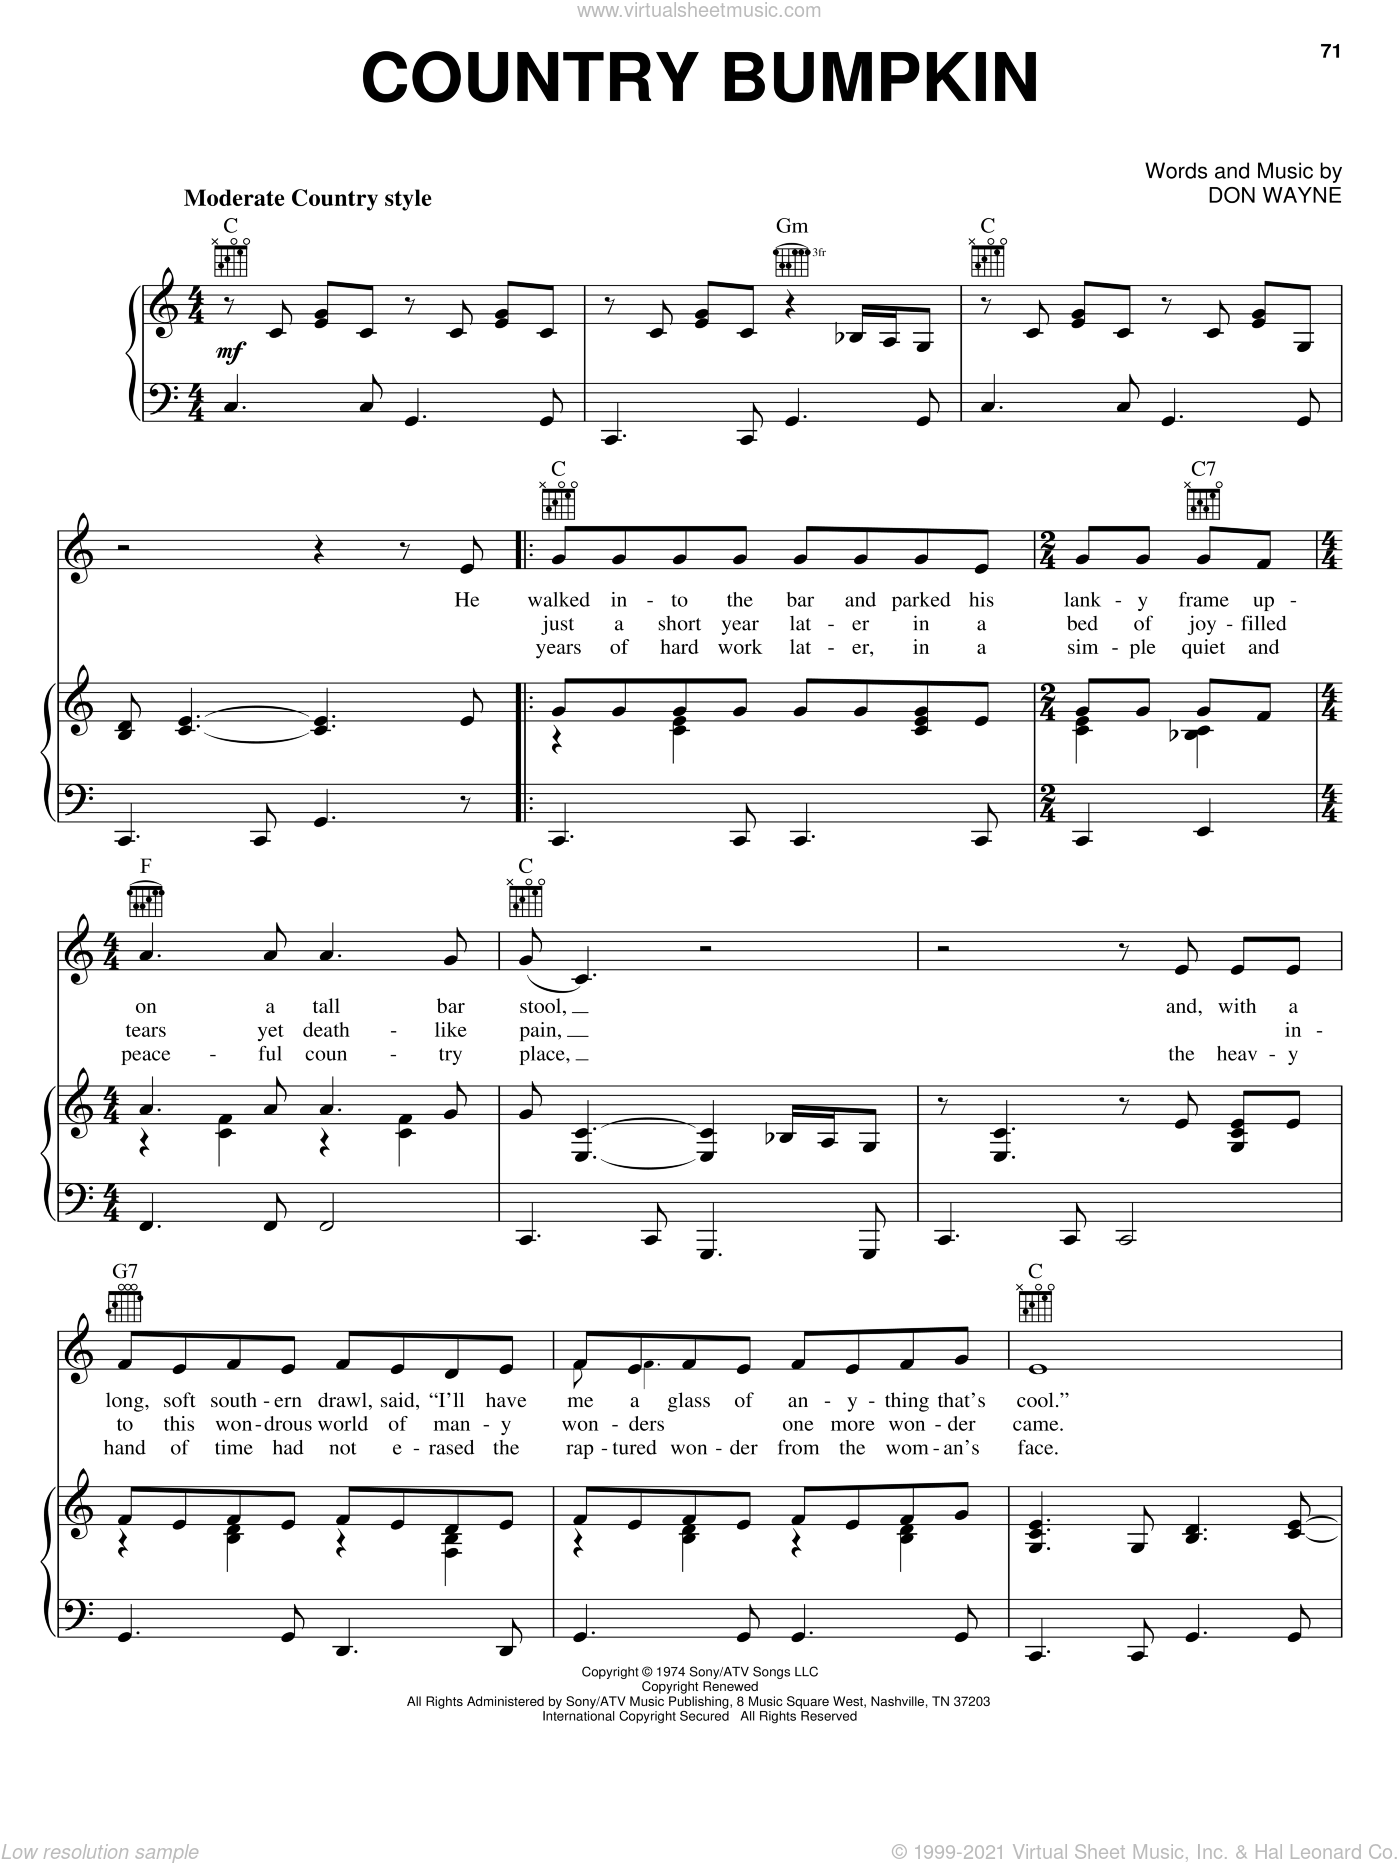 Country Bumpkin sheet music for voice, piano or guitar by Don Wayne